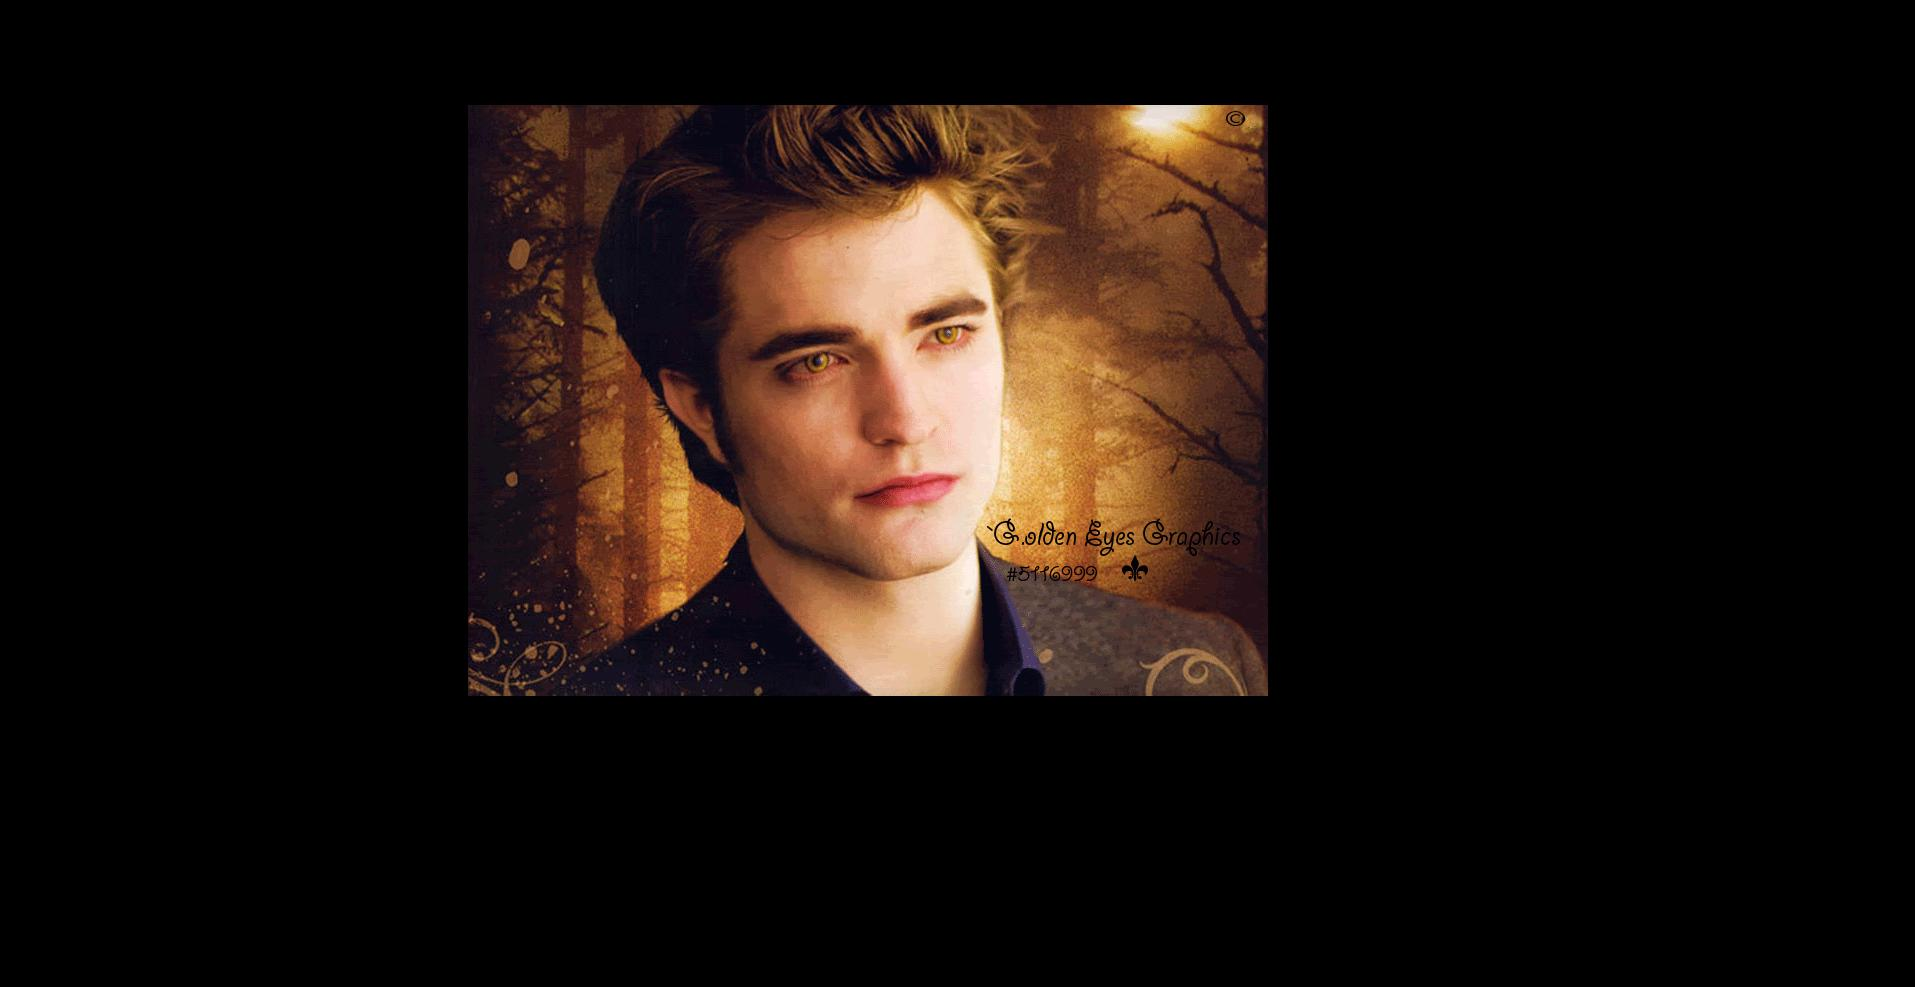 Edward - Twilight